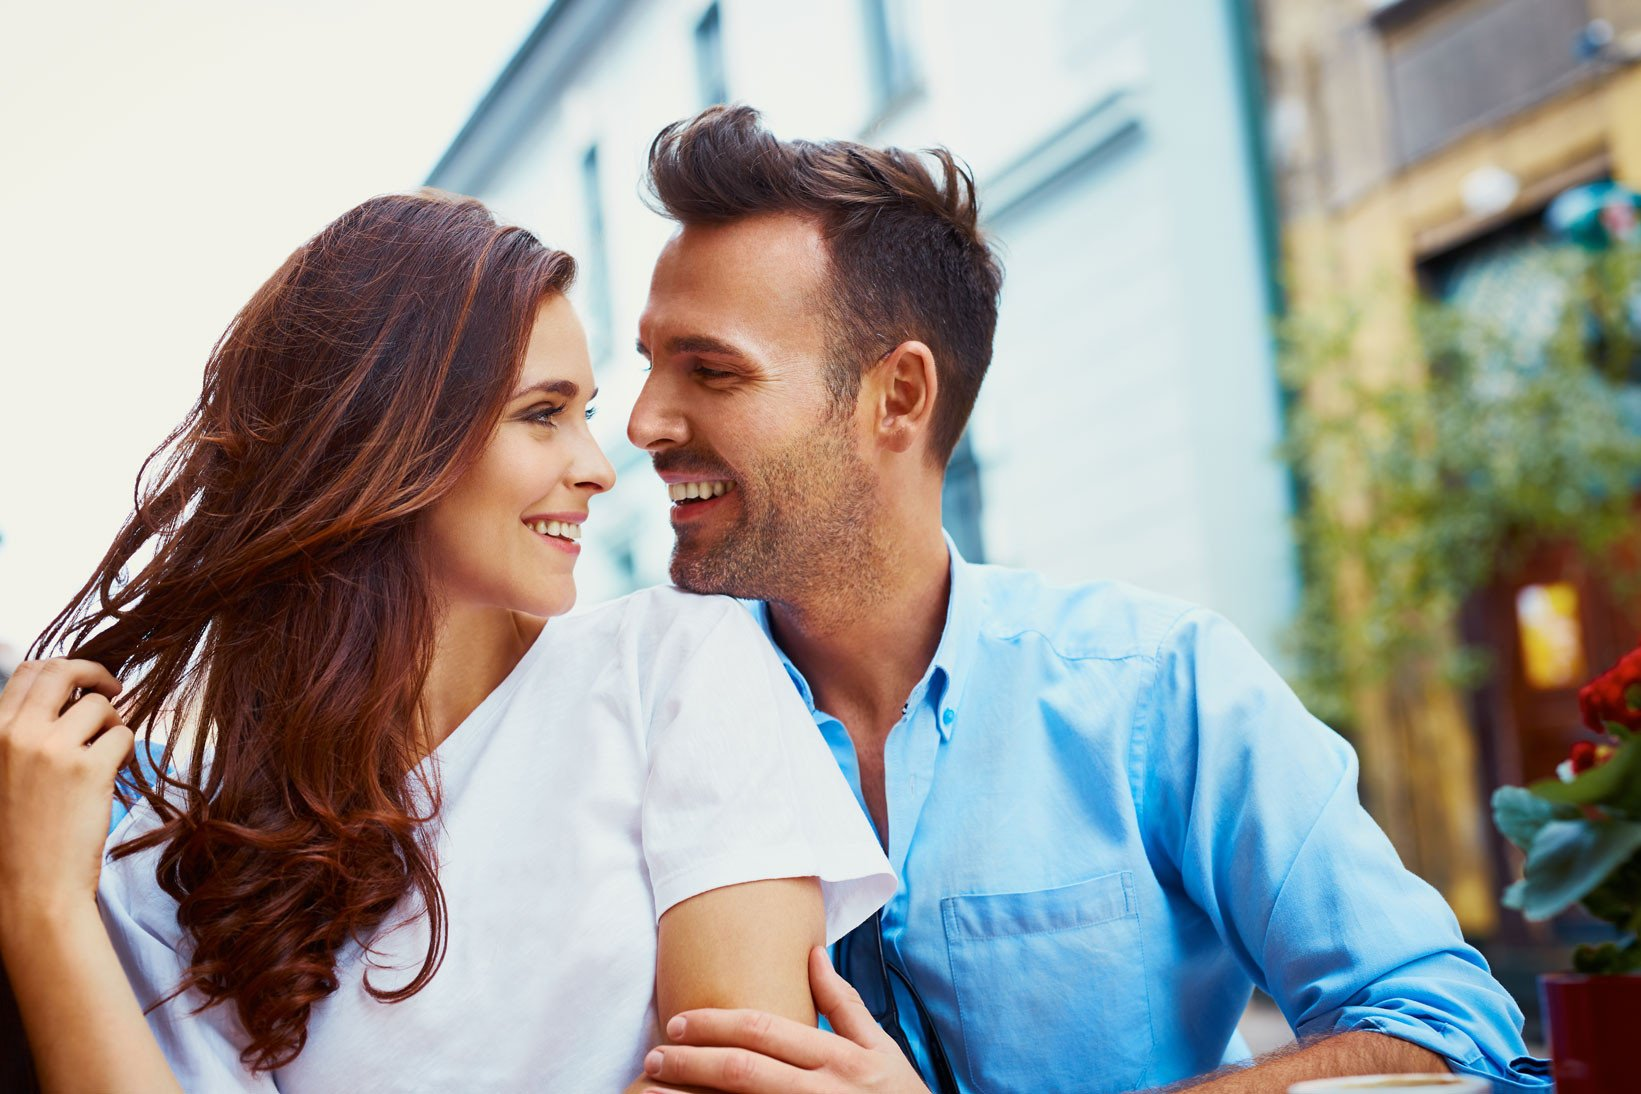 Qualities that attract Men other than physical appearance